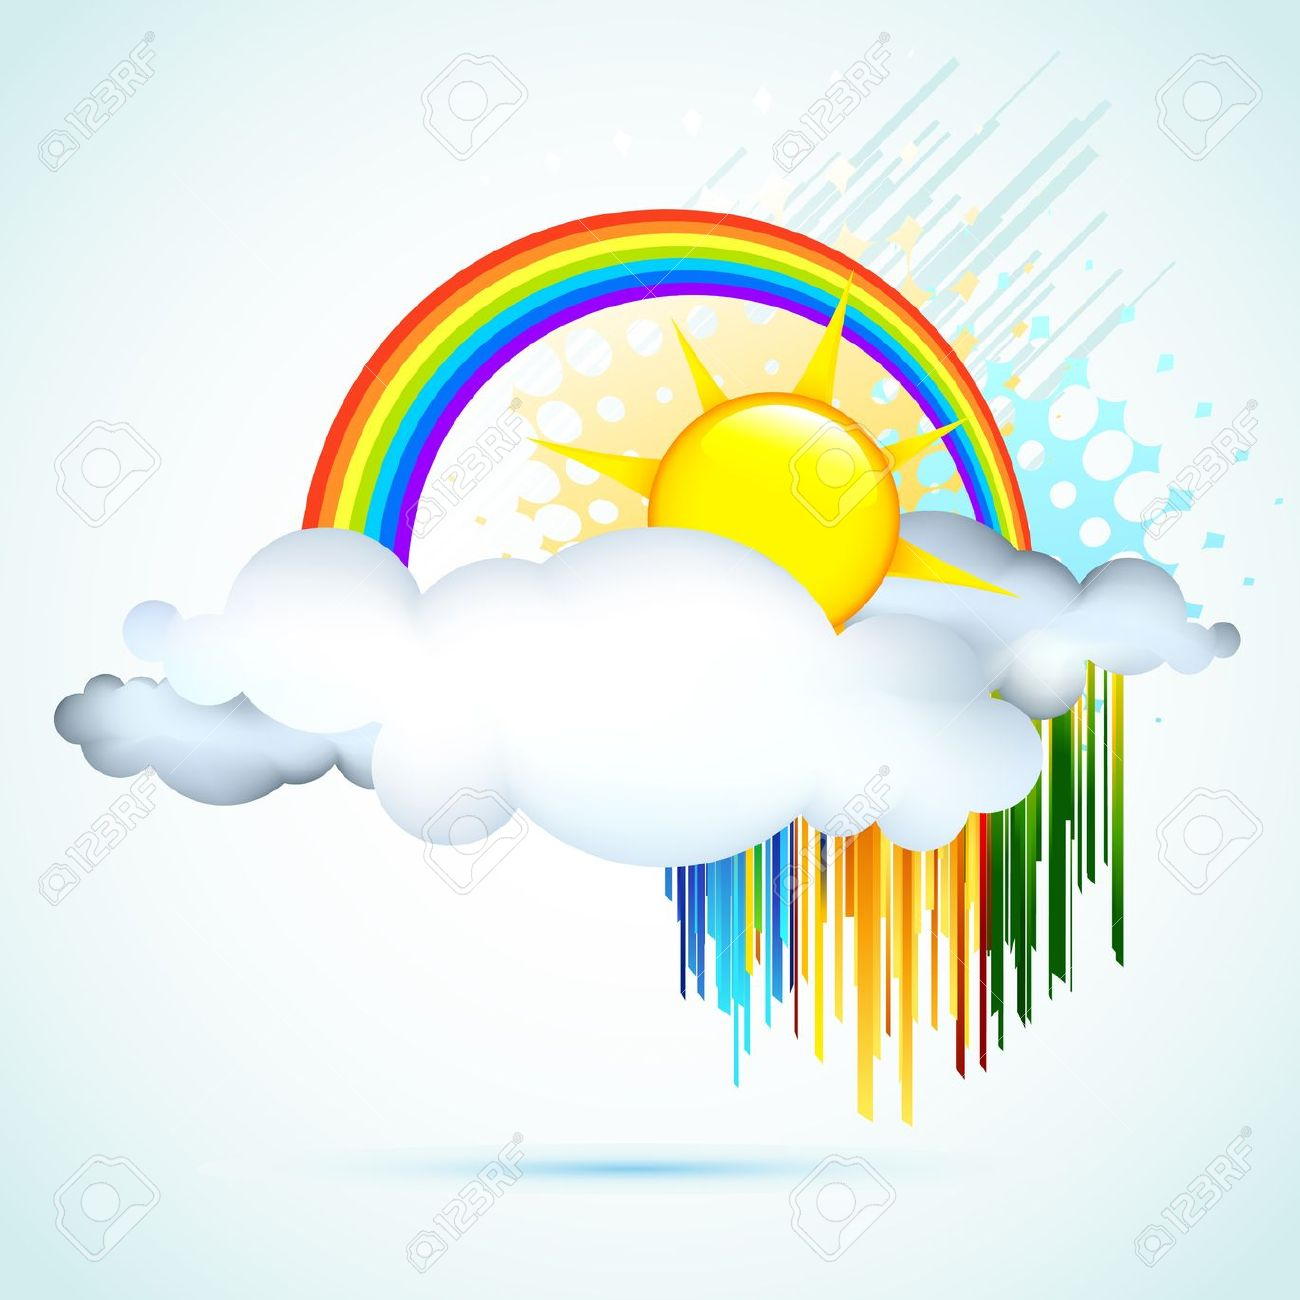 rainy sky clipart - Cl...